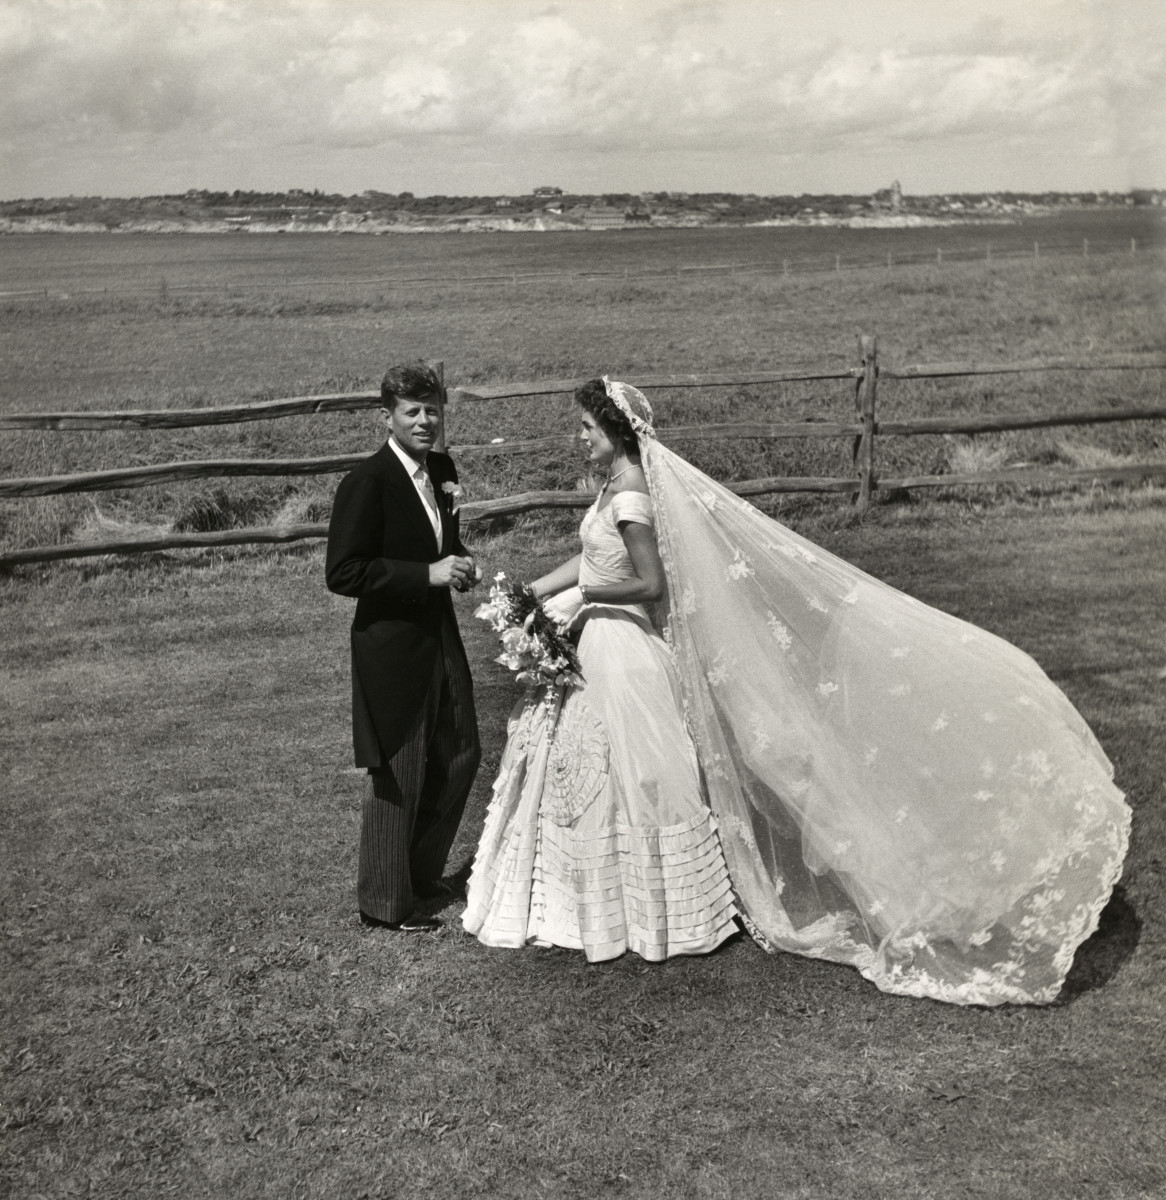 Jackie and Jack Kennedy on their Wedding Day, Rhode Island, 12 September 1953.